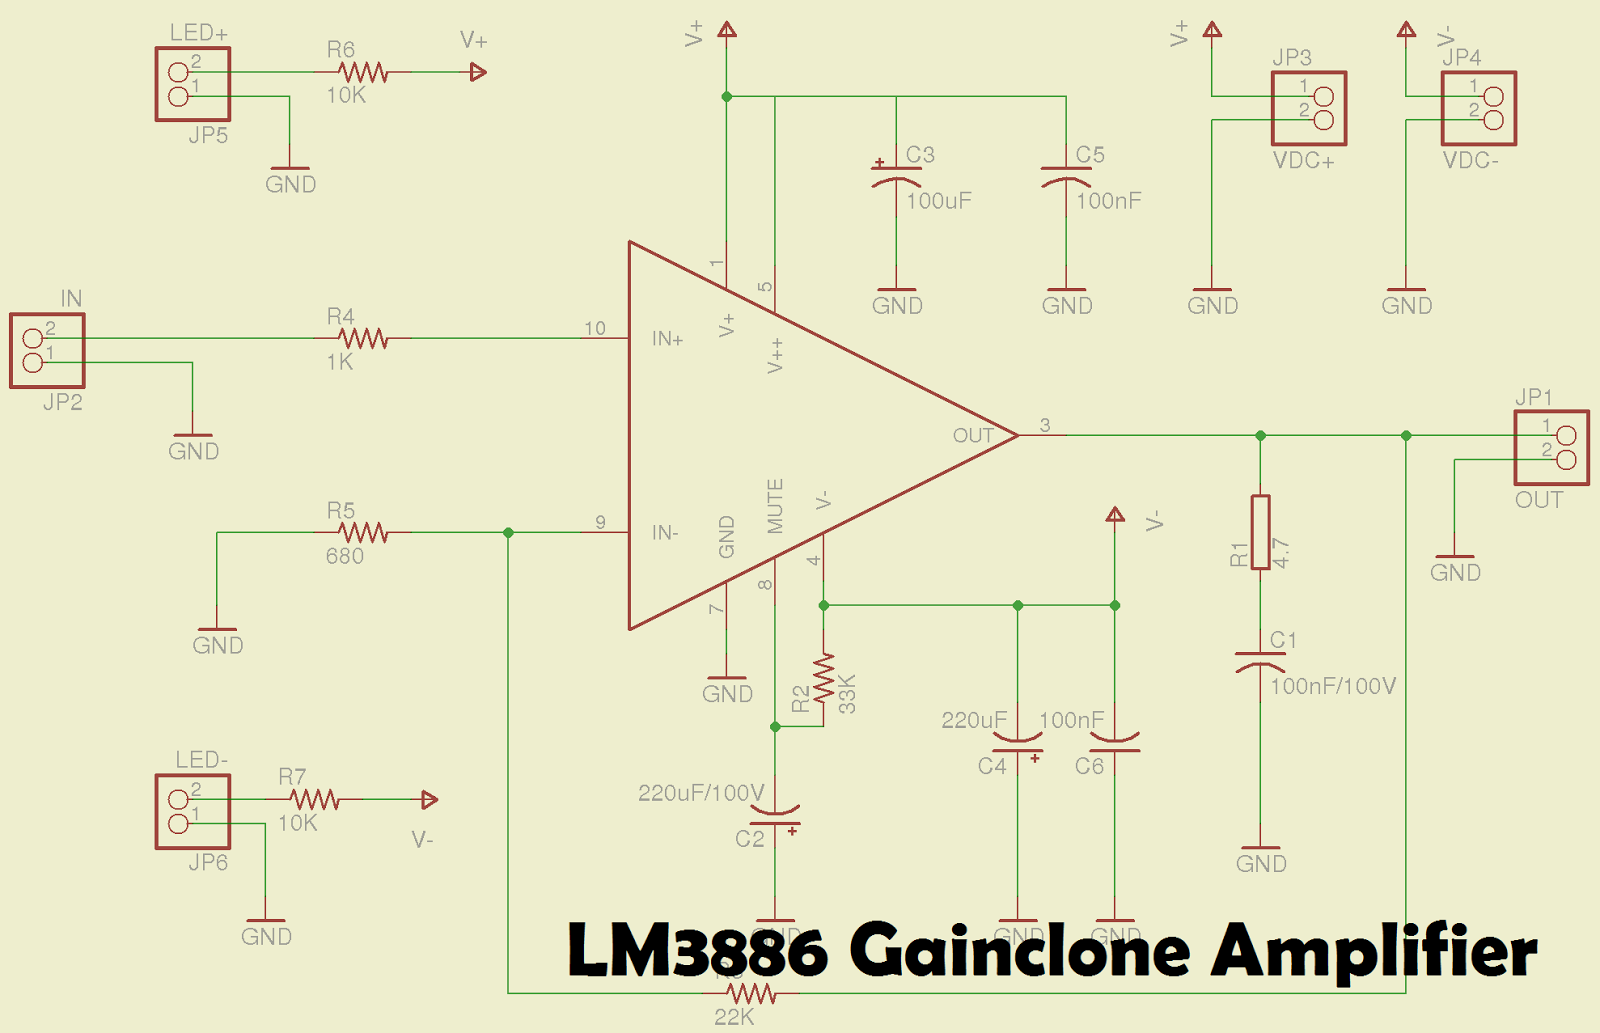 Lm3886 Amplifier Circuit Electronics Pinterest Audio 20w Electronic Schematic Wiring Diagram Gainclone Circuits Simple Consumer